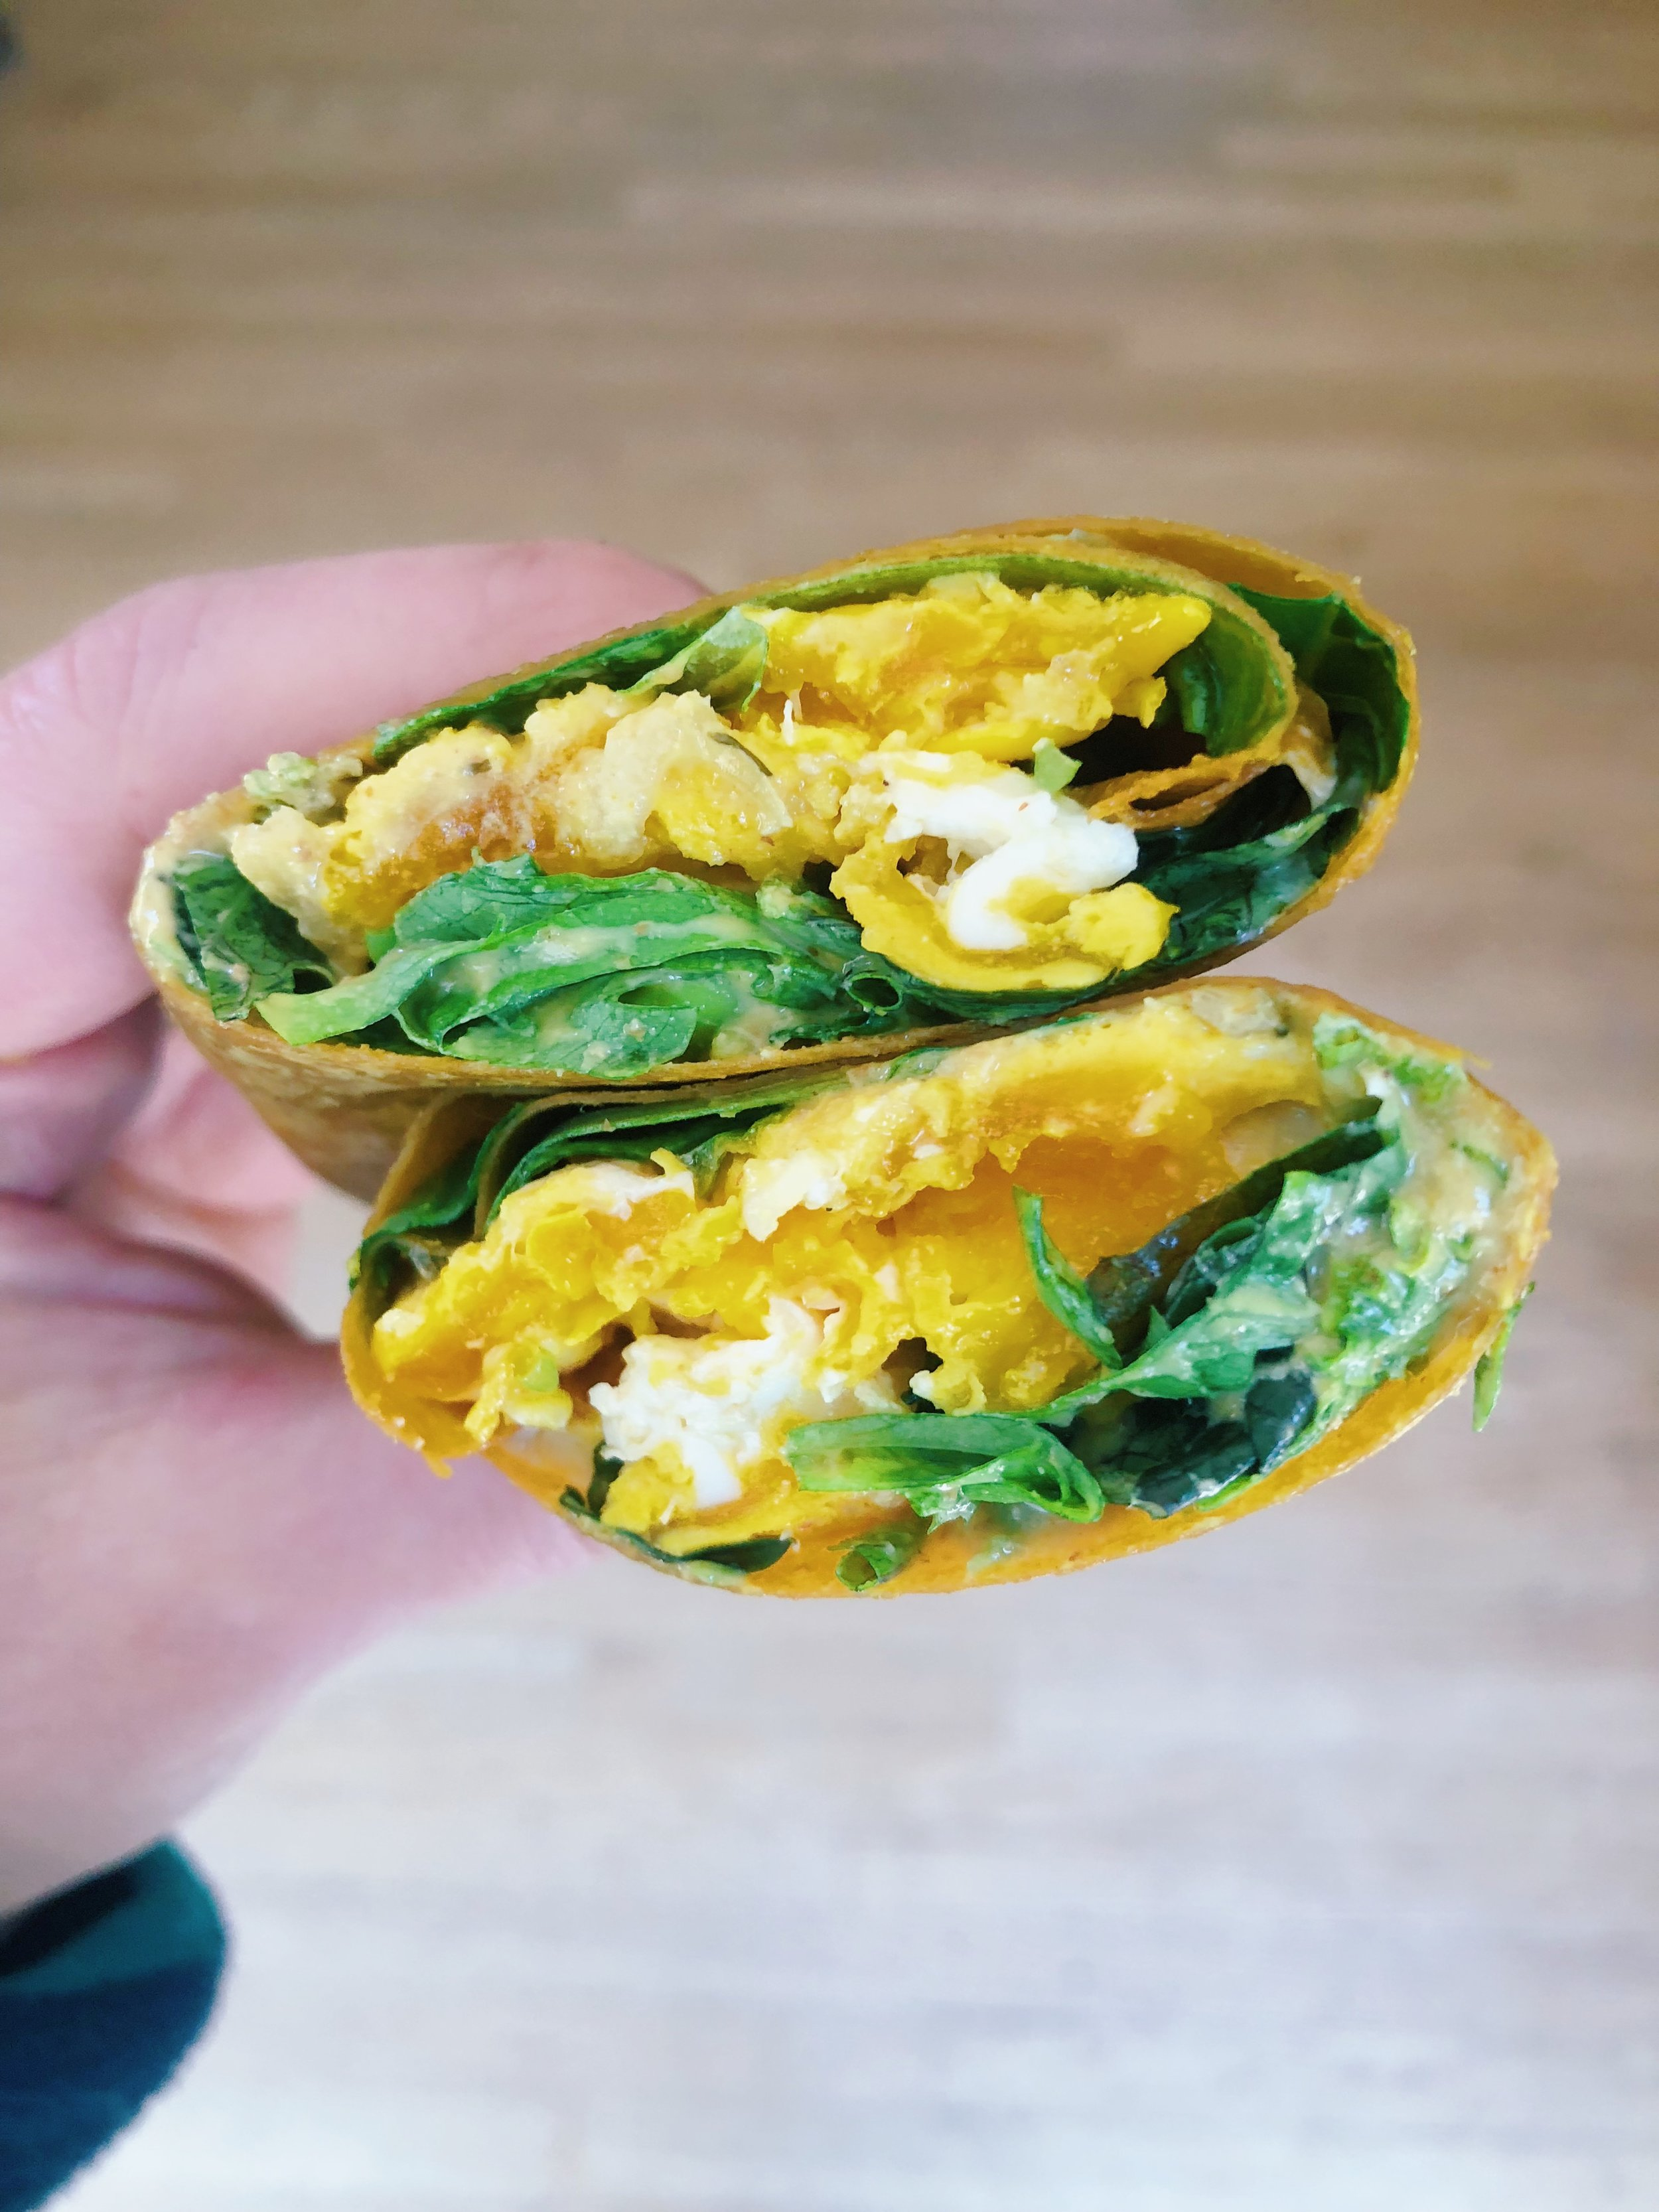 Here's the Curry Miso dressing on a turmeric coconut wrap with a fried pastured egg, avocado, tat soi and garlic dill kraut.